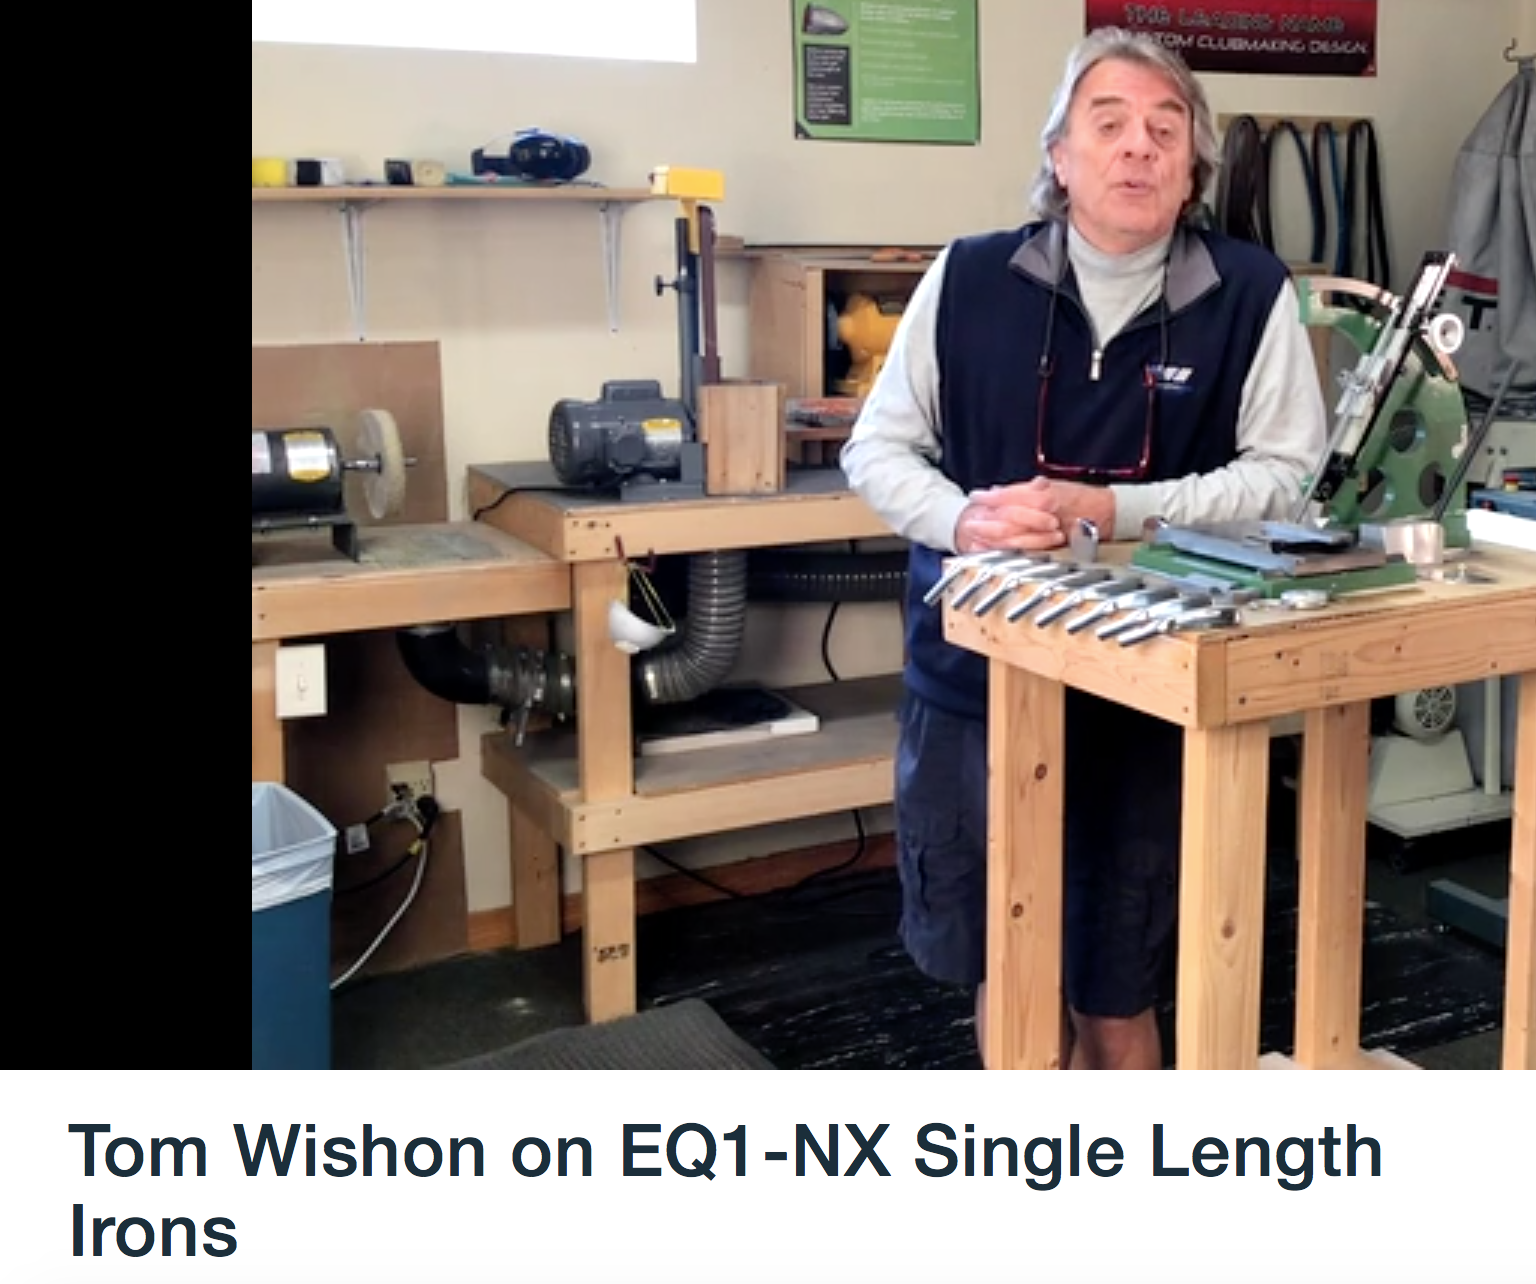 Tom Wishon on EQ1-NX Single Length Irons